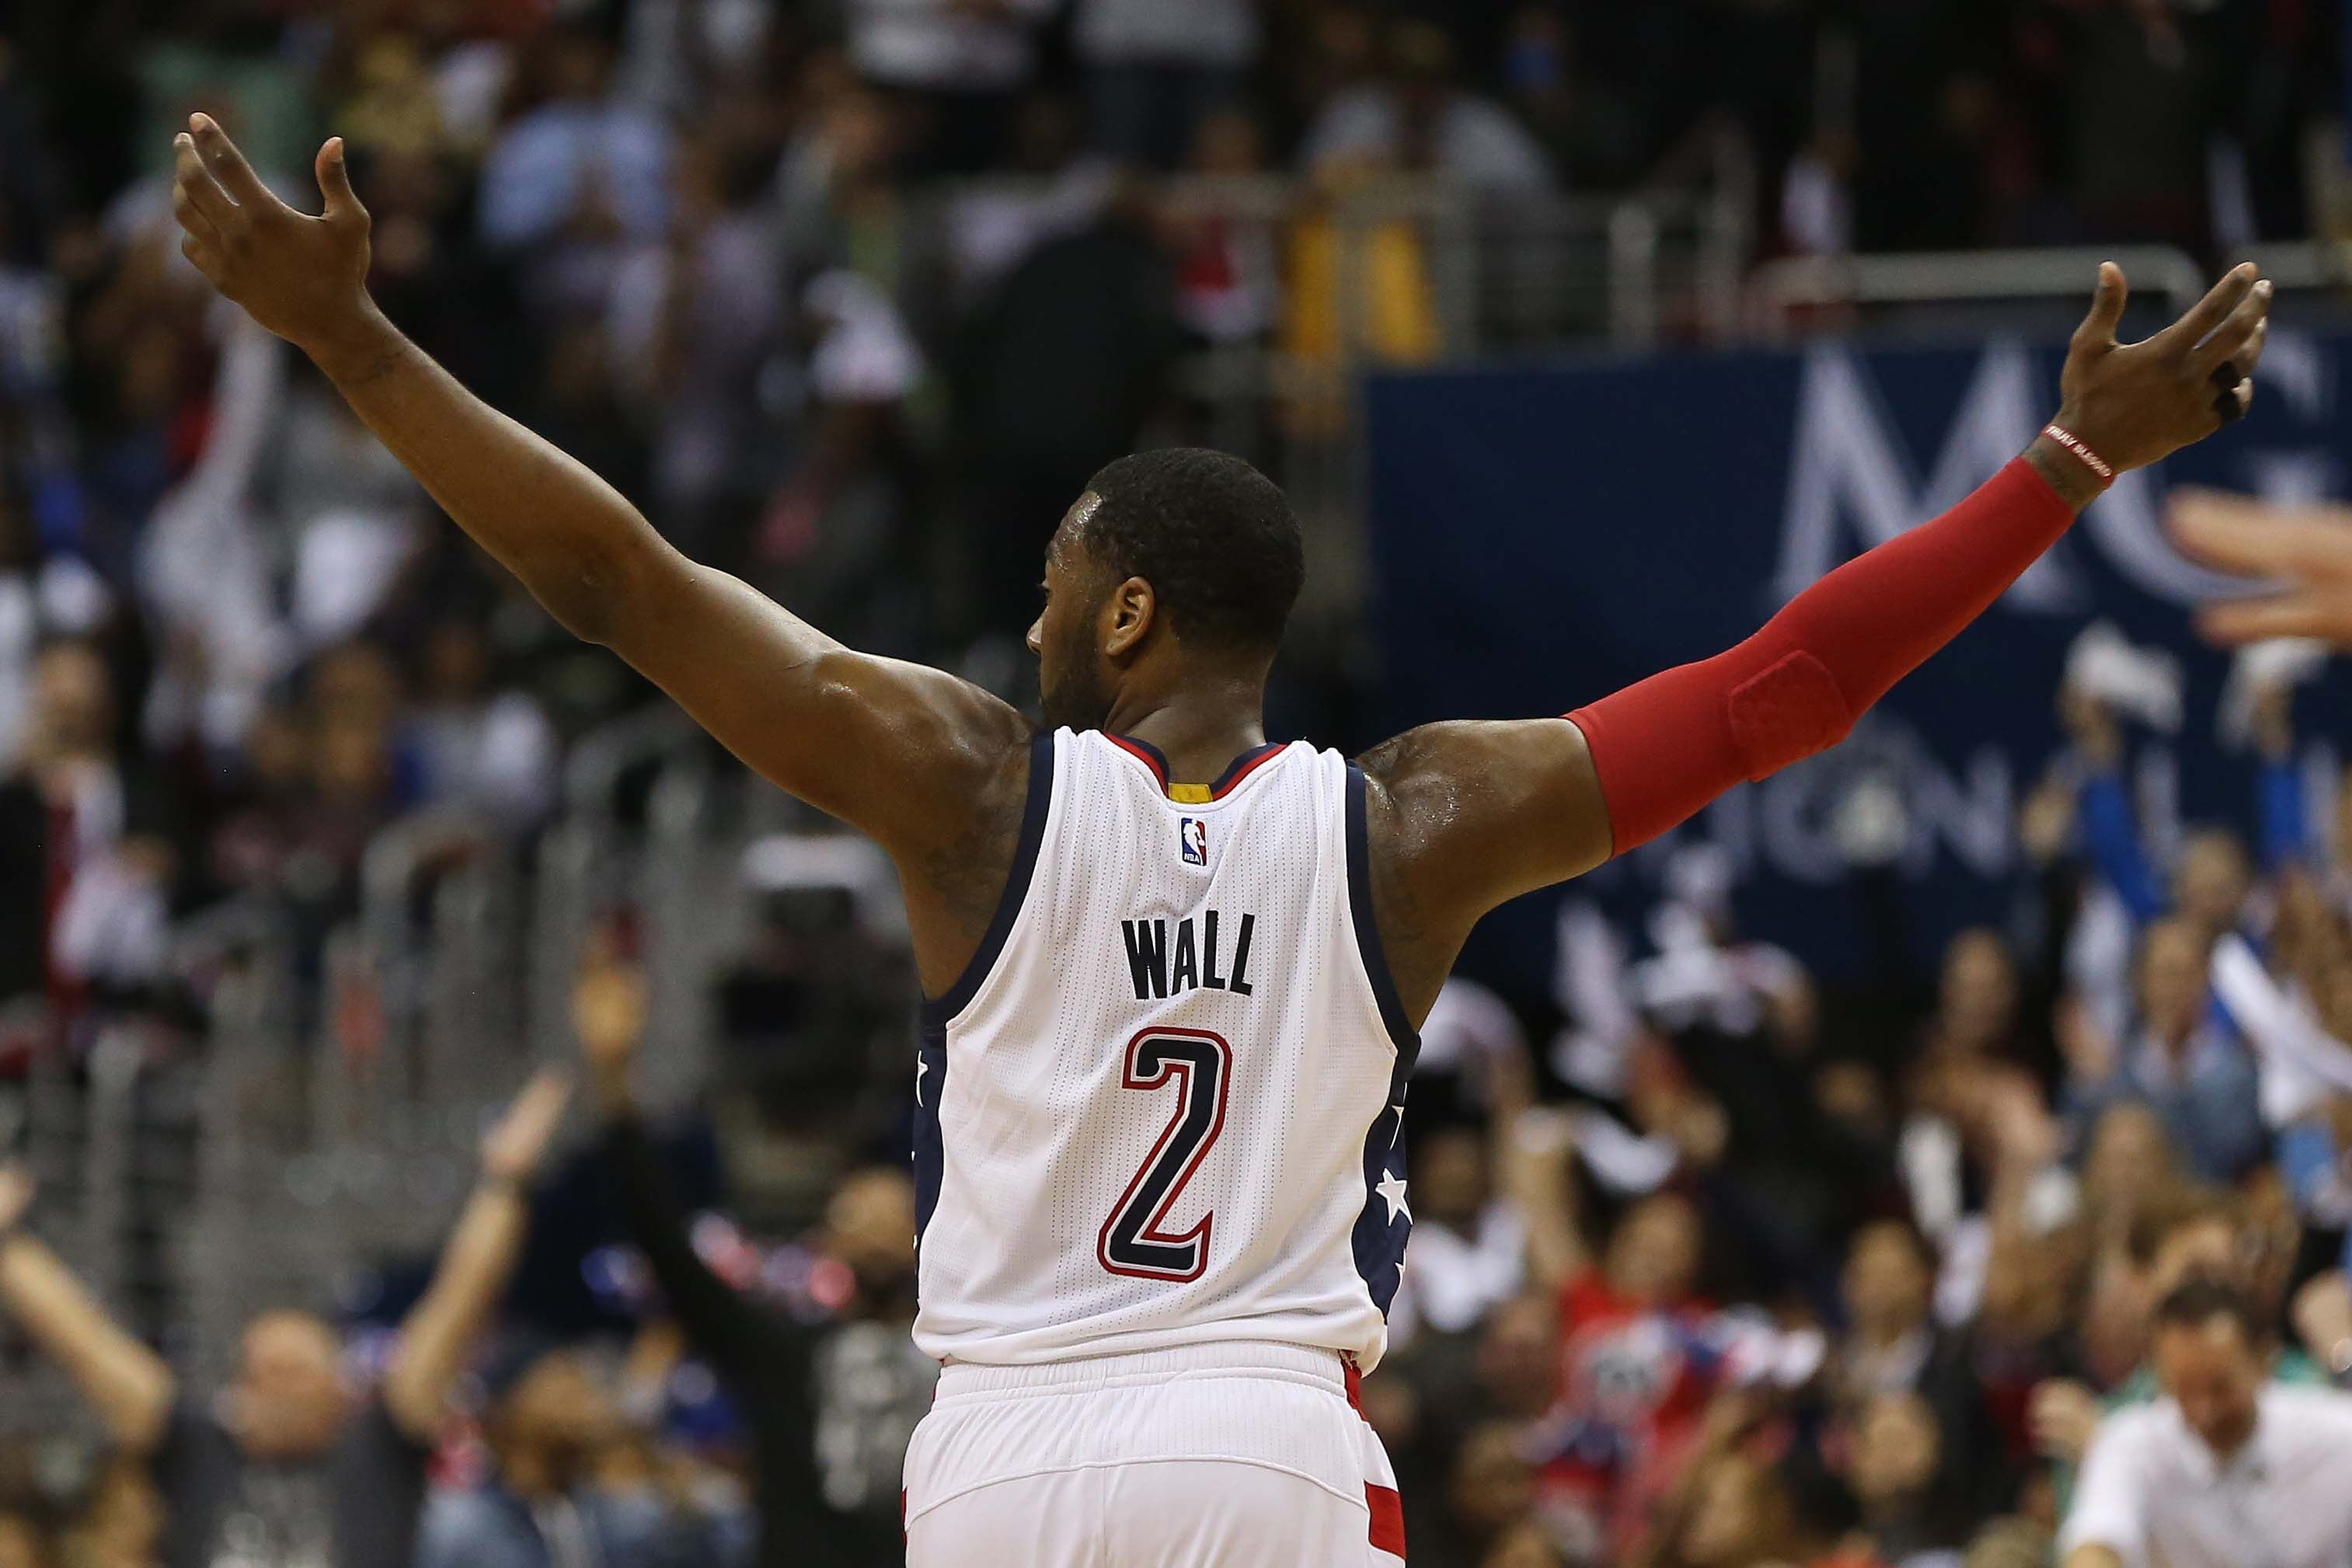 nba fantasy projections Get up-to-date projections, rankings and tips for your fantasy draft.